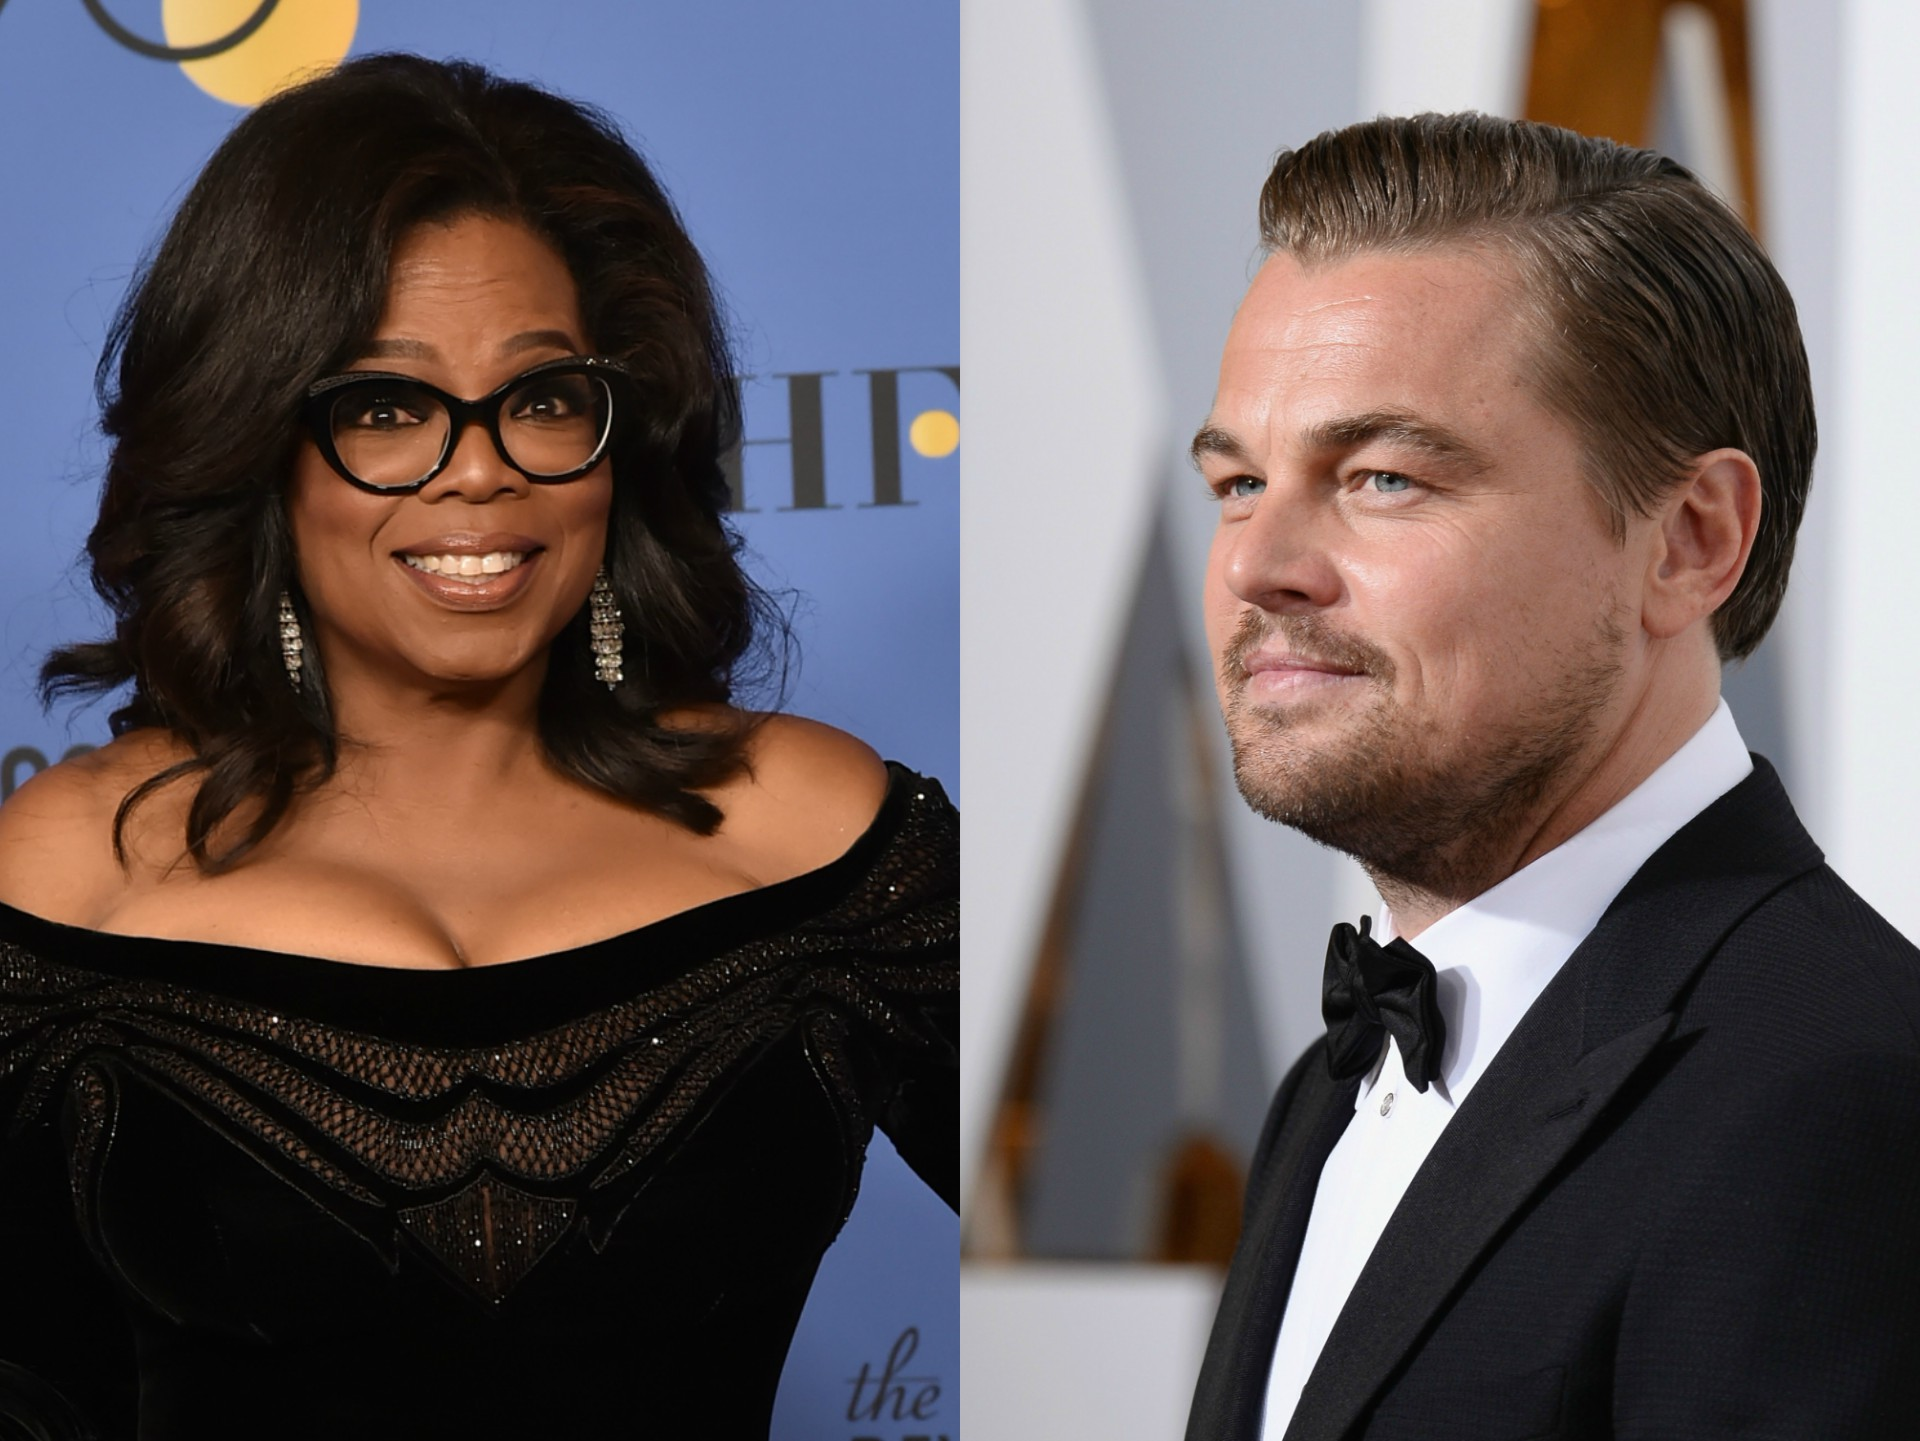 Oprah Winfrey Reacts to Donald Trump Calling Her